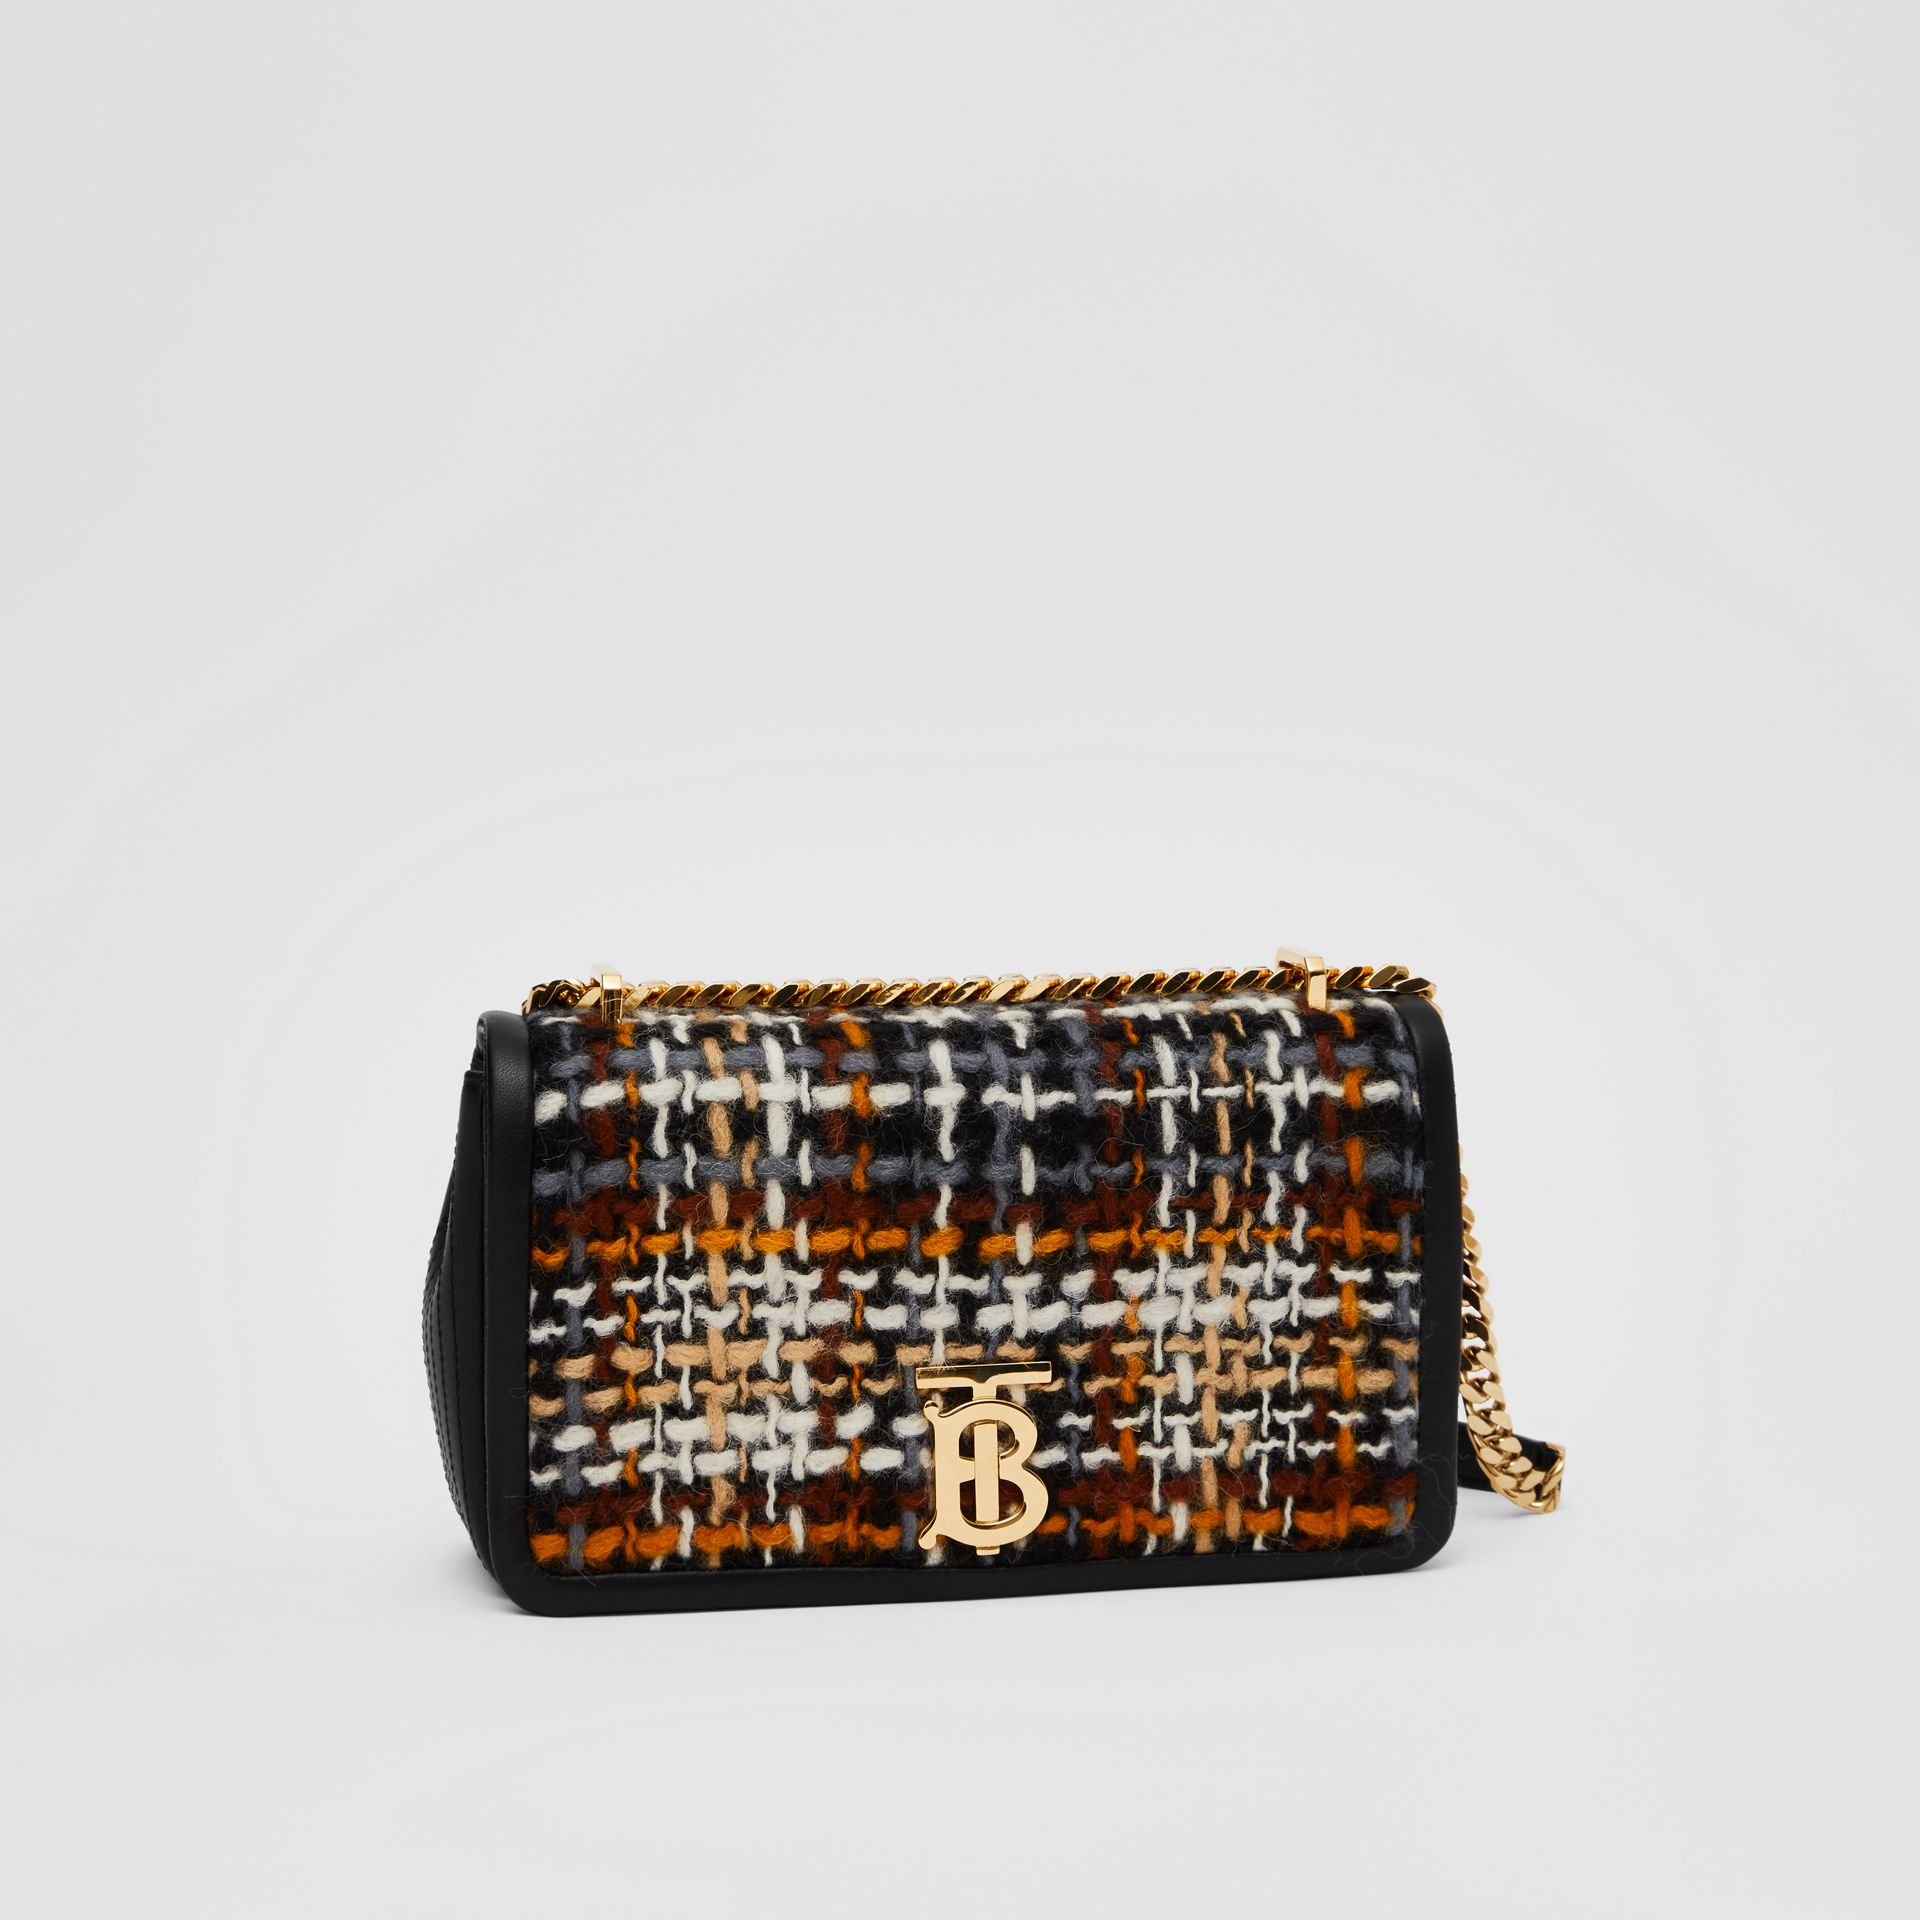 Small Tweed and Lambskin Lola Bag in Black - Women | Burberry - gallery image 6